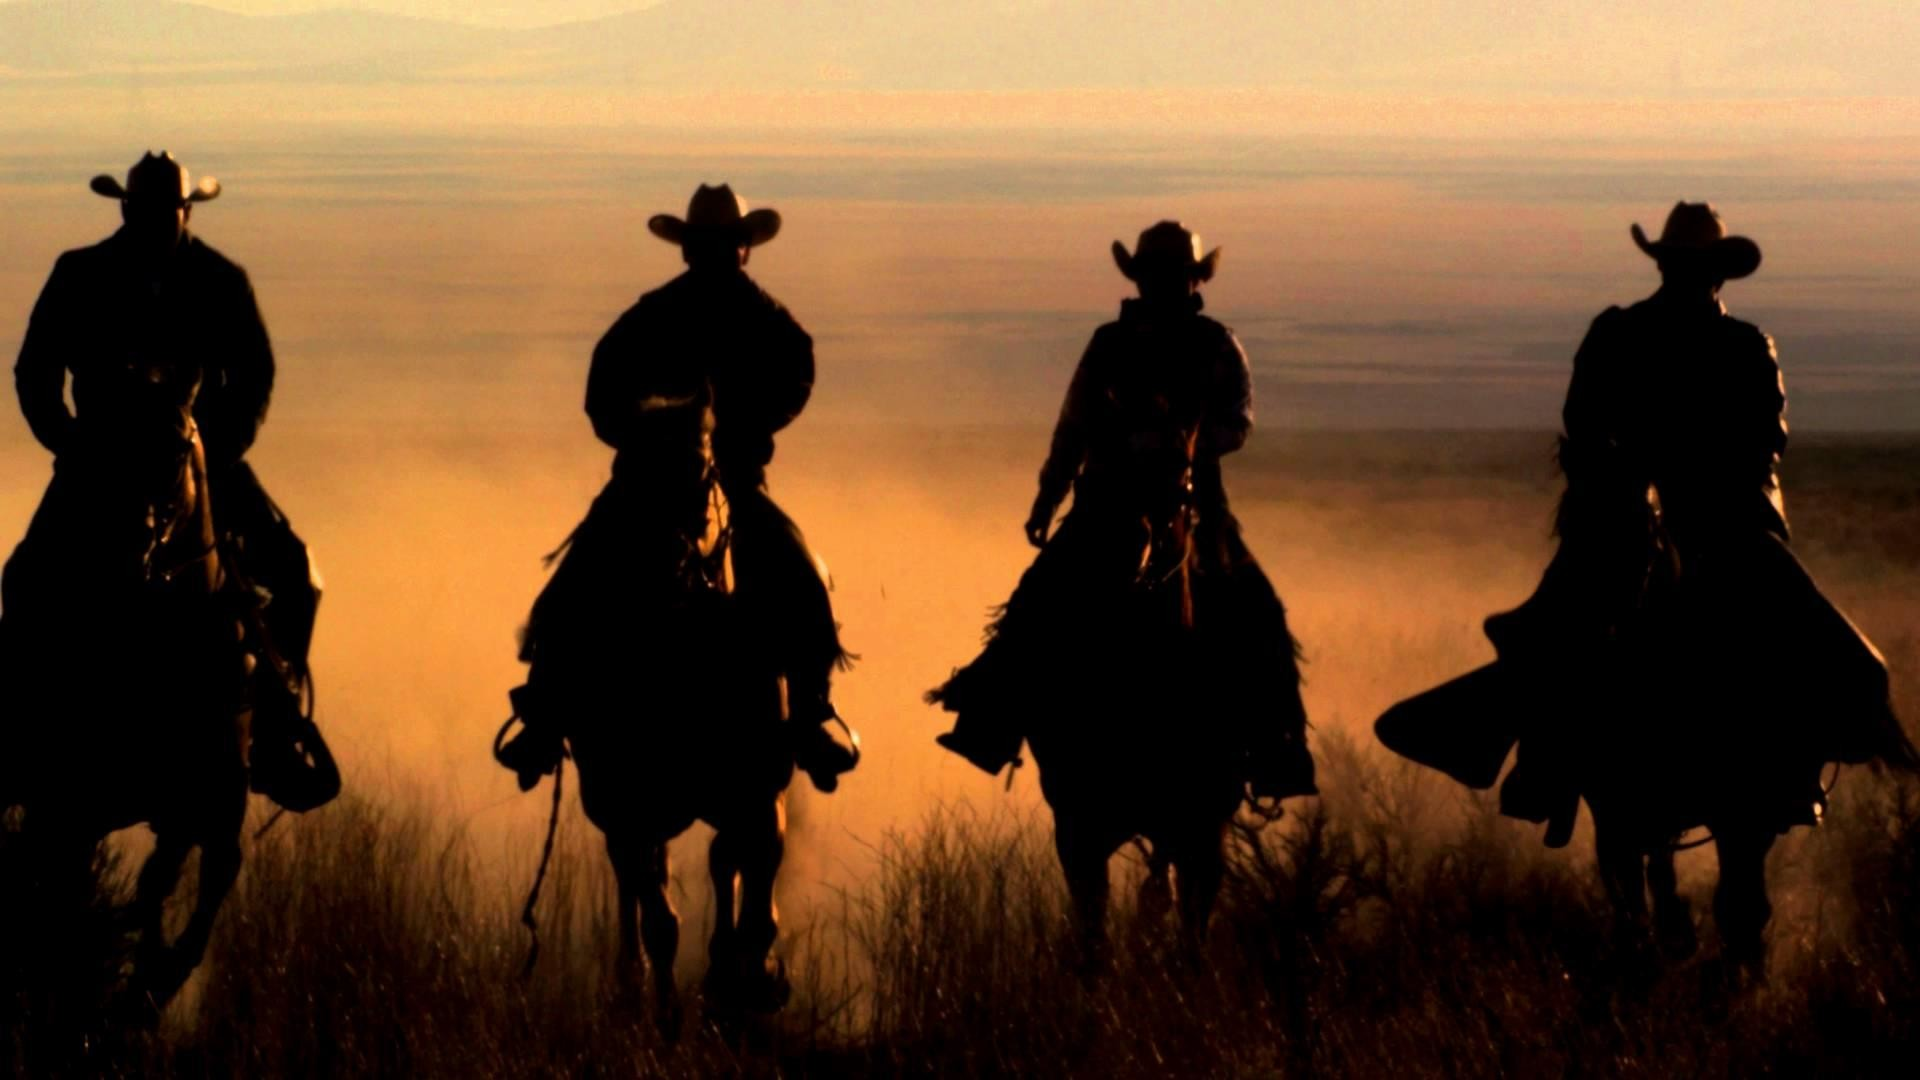 1920x1080 Slow-Motion-Panning-Shot-Of-Four-Cowboys-Riding-